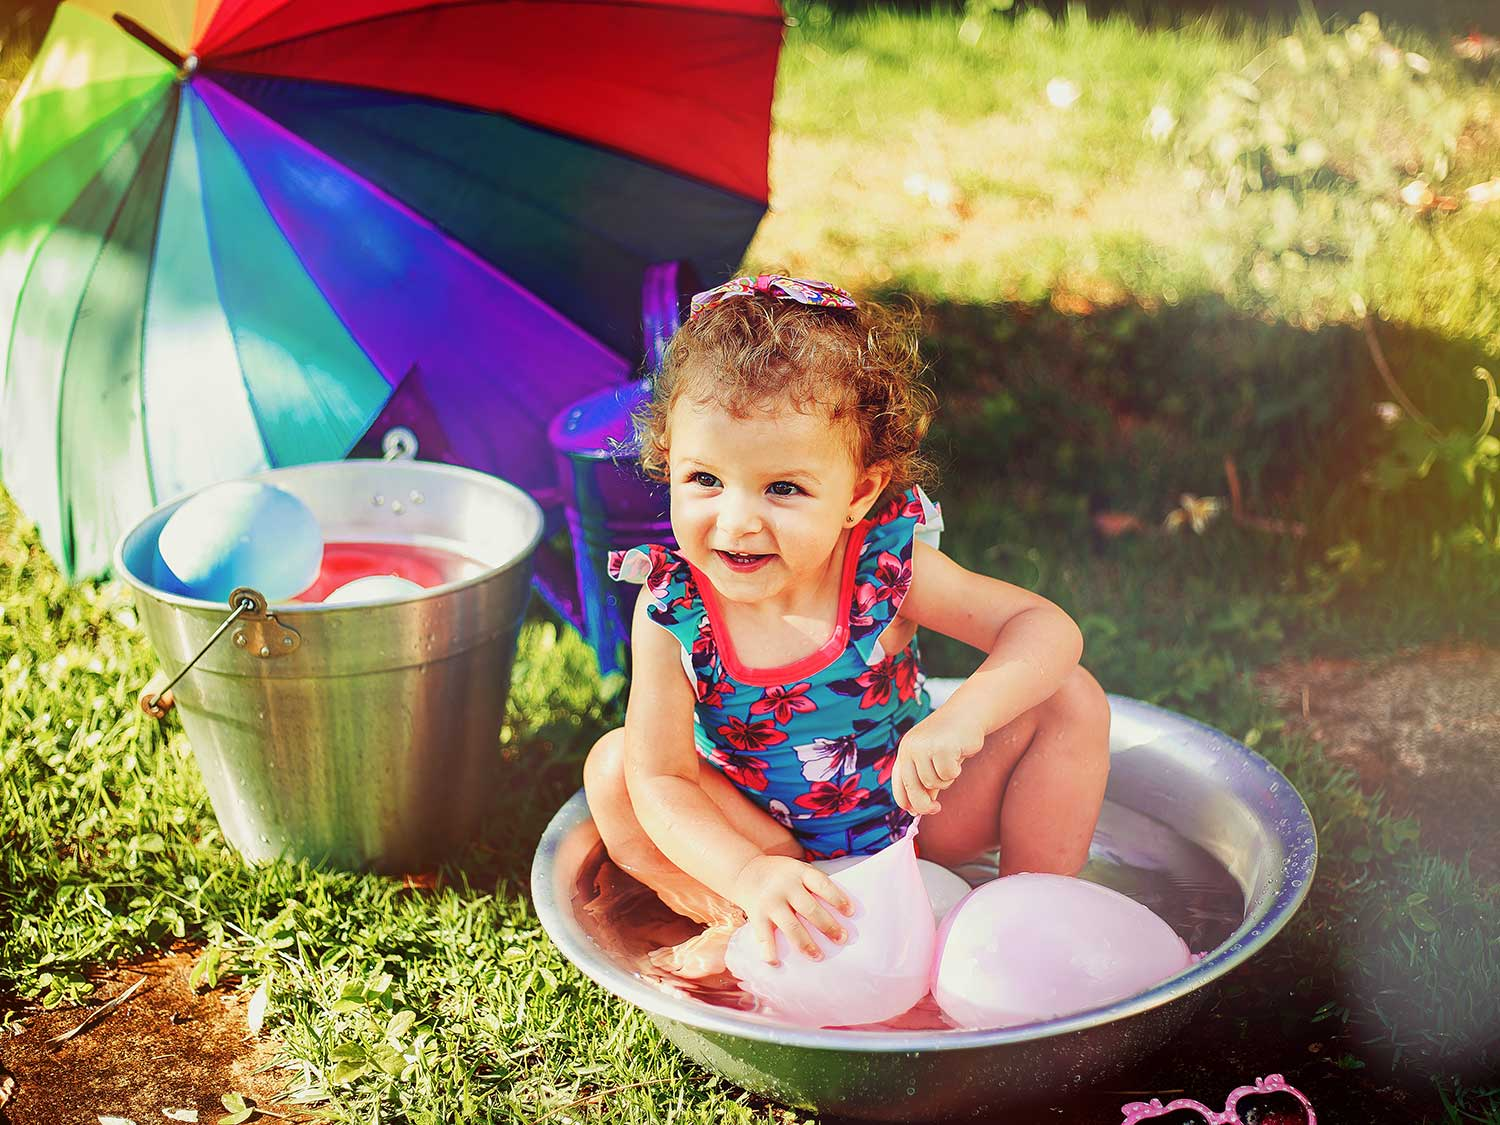 Girl sitting in bucket with water balloons.